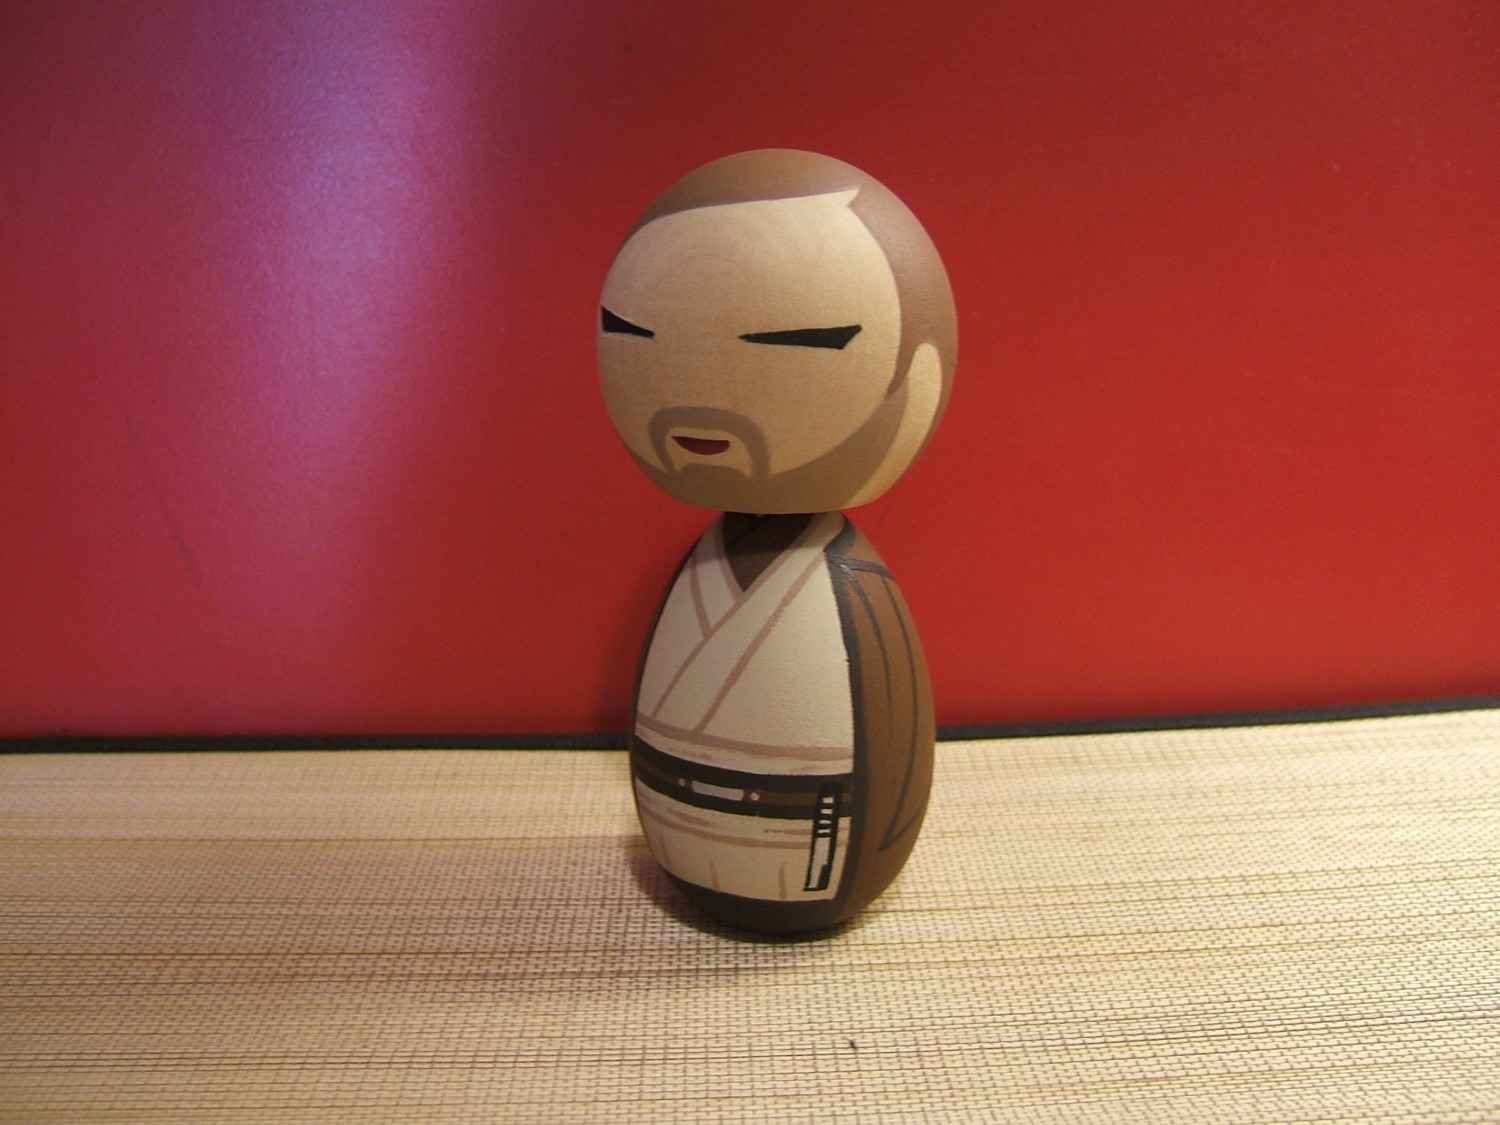 Star Wars inspired Kokeshi dolls make for great collectibles